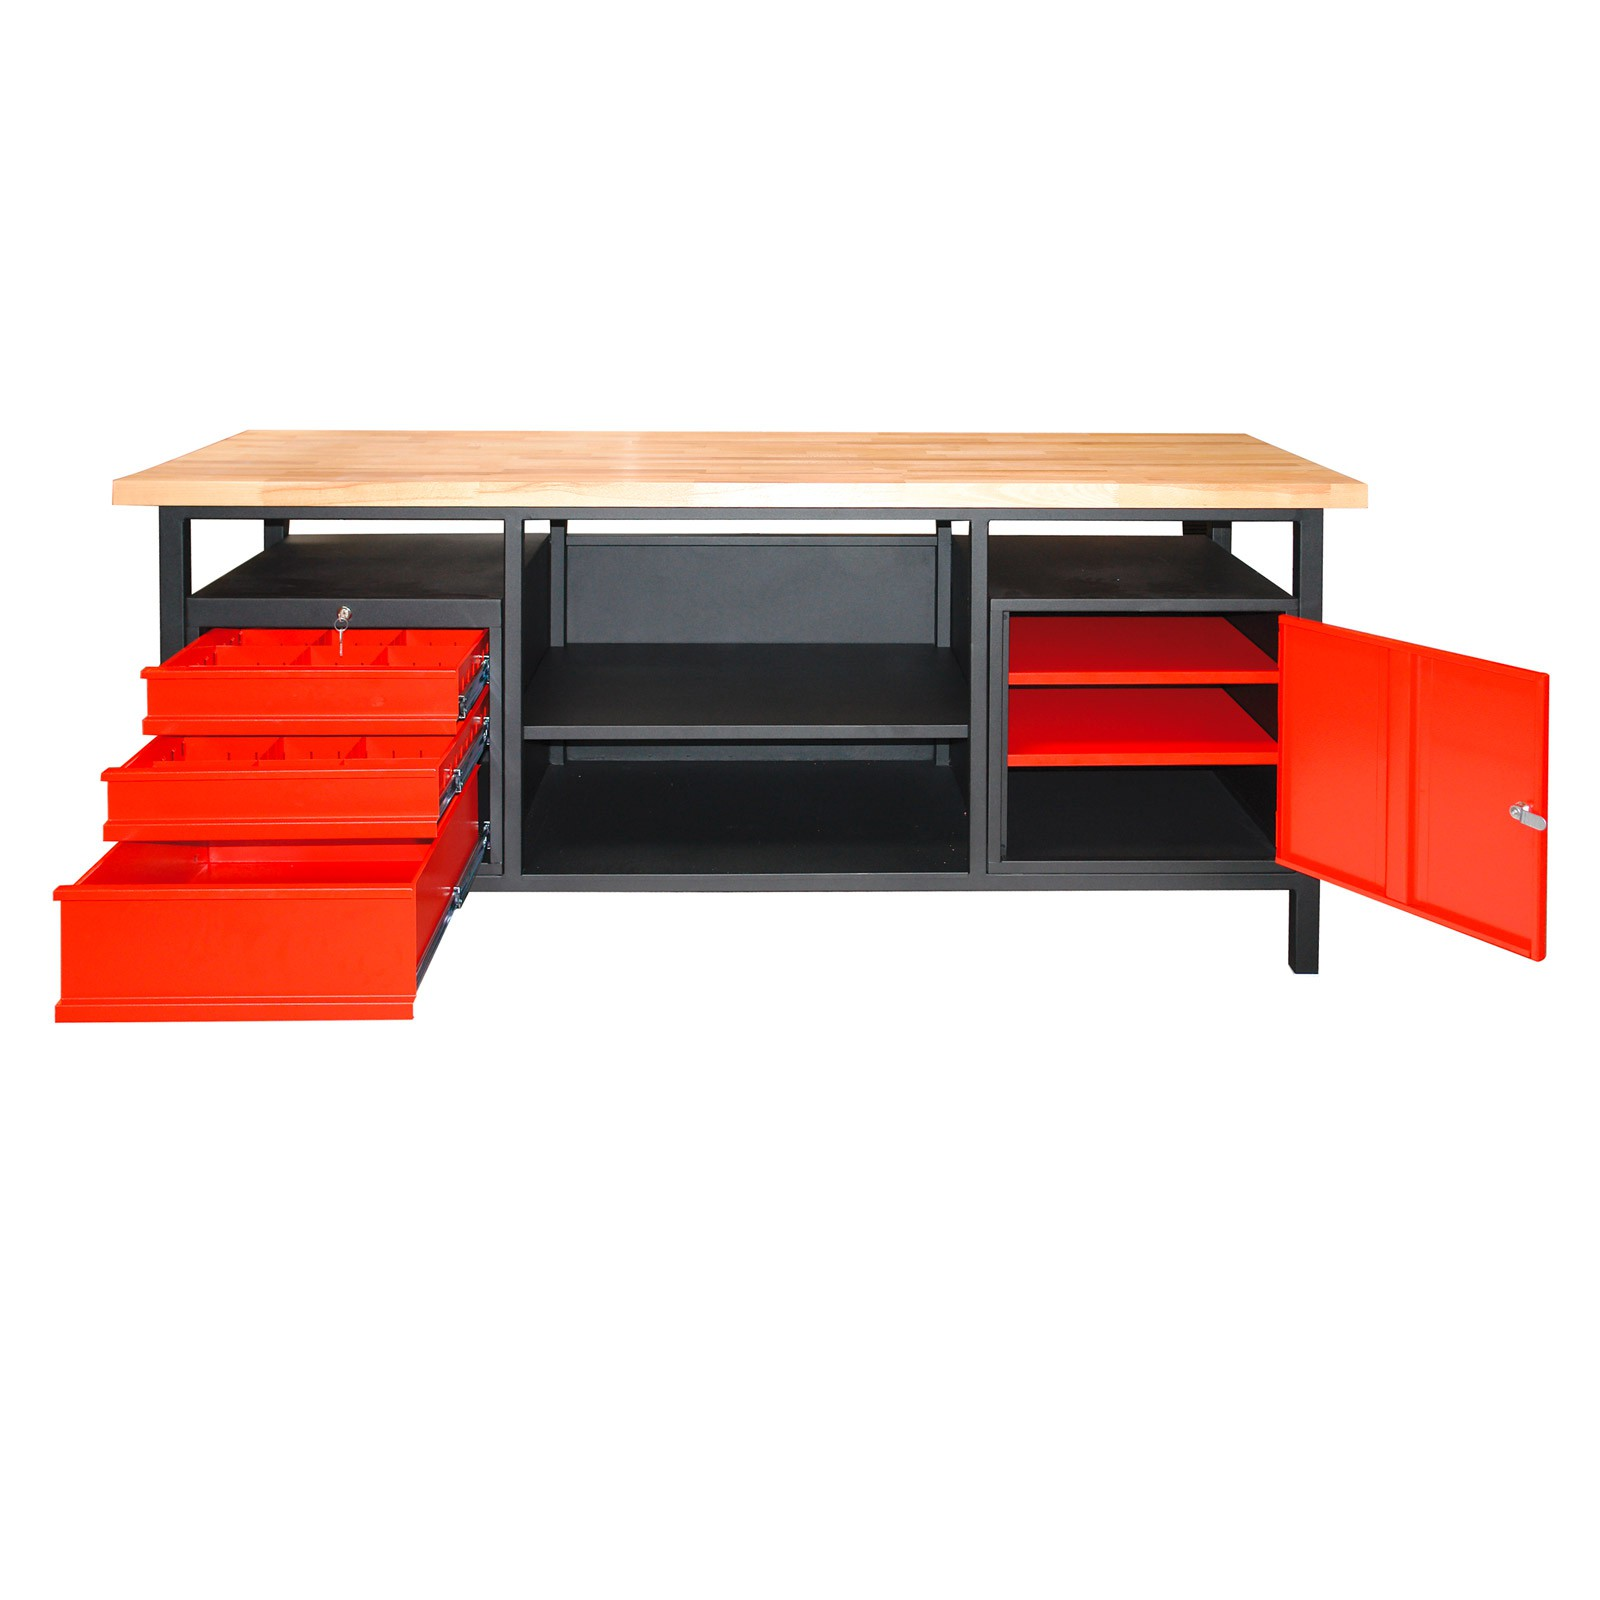 werkbank xxl werktisch werktischbank 3 schubladen 1 t r 200 x 68 x 85 cm 40892 ebay. Black Bedroom Furniture Sets. Home Design Ideas